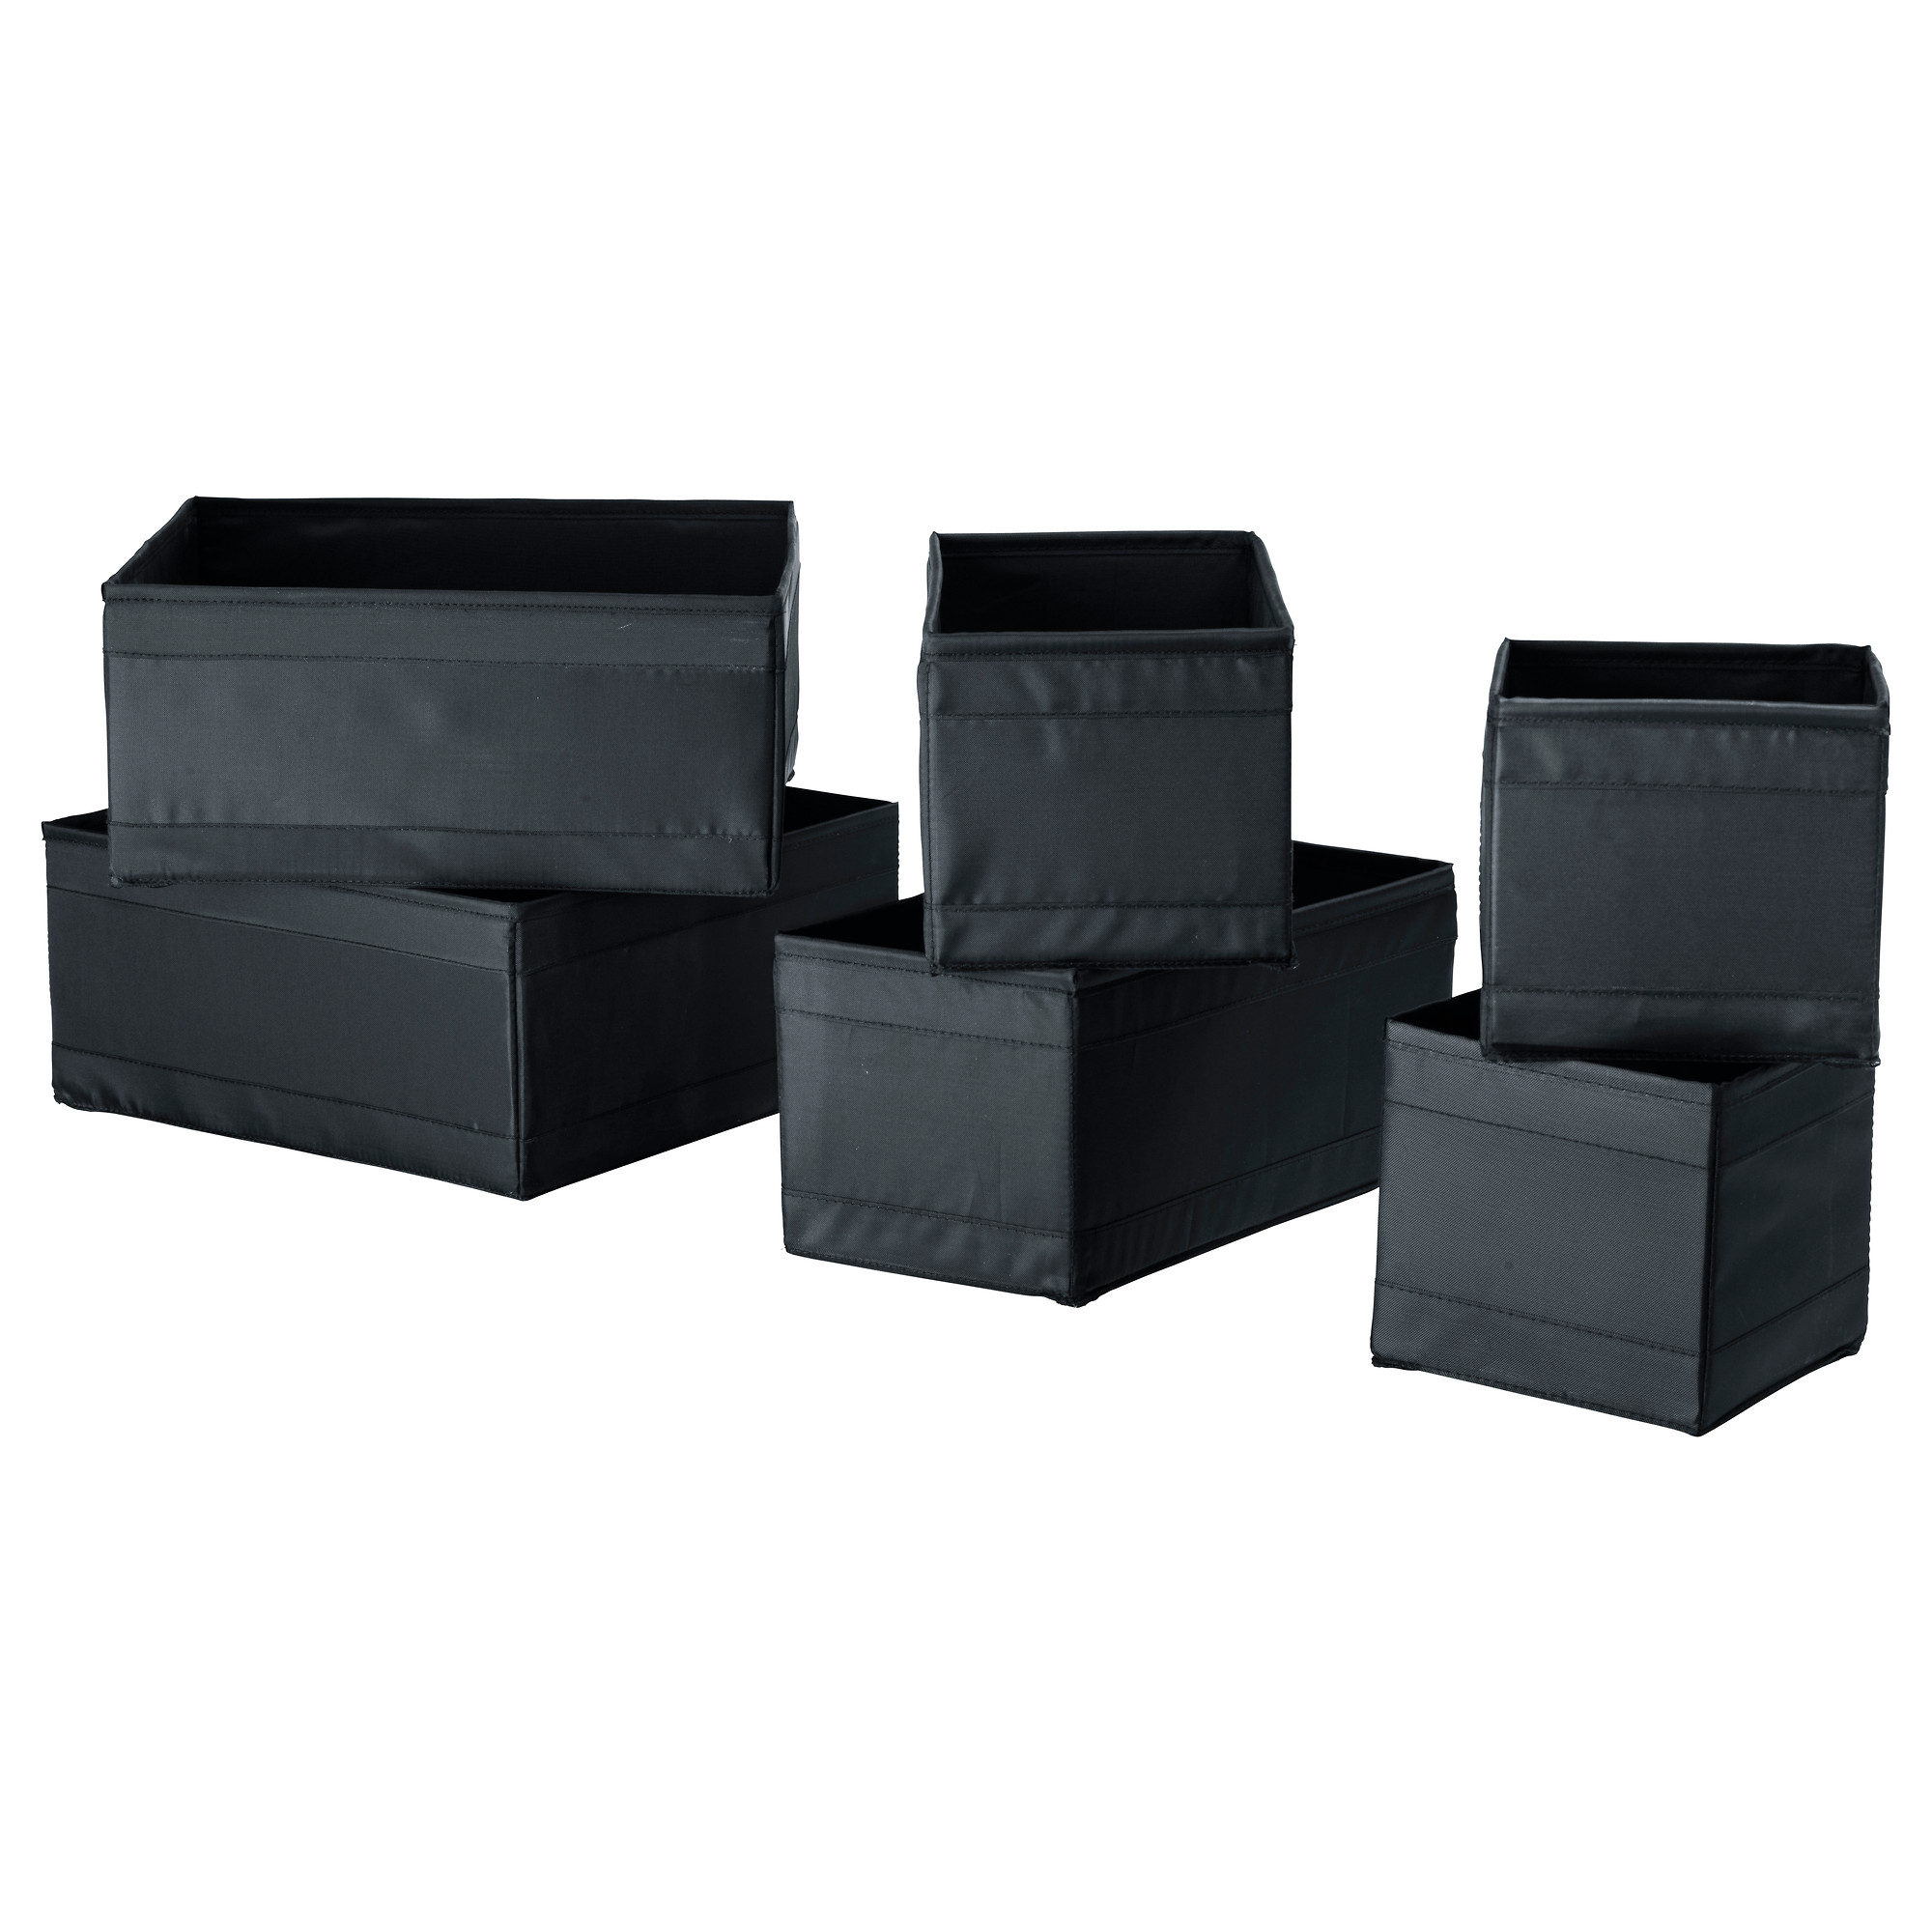 bin with plus size containers uk in drawers ikea conjunction kitchen boxes full storage bins of drawer furniture